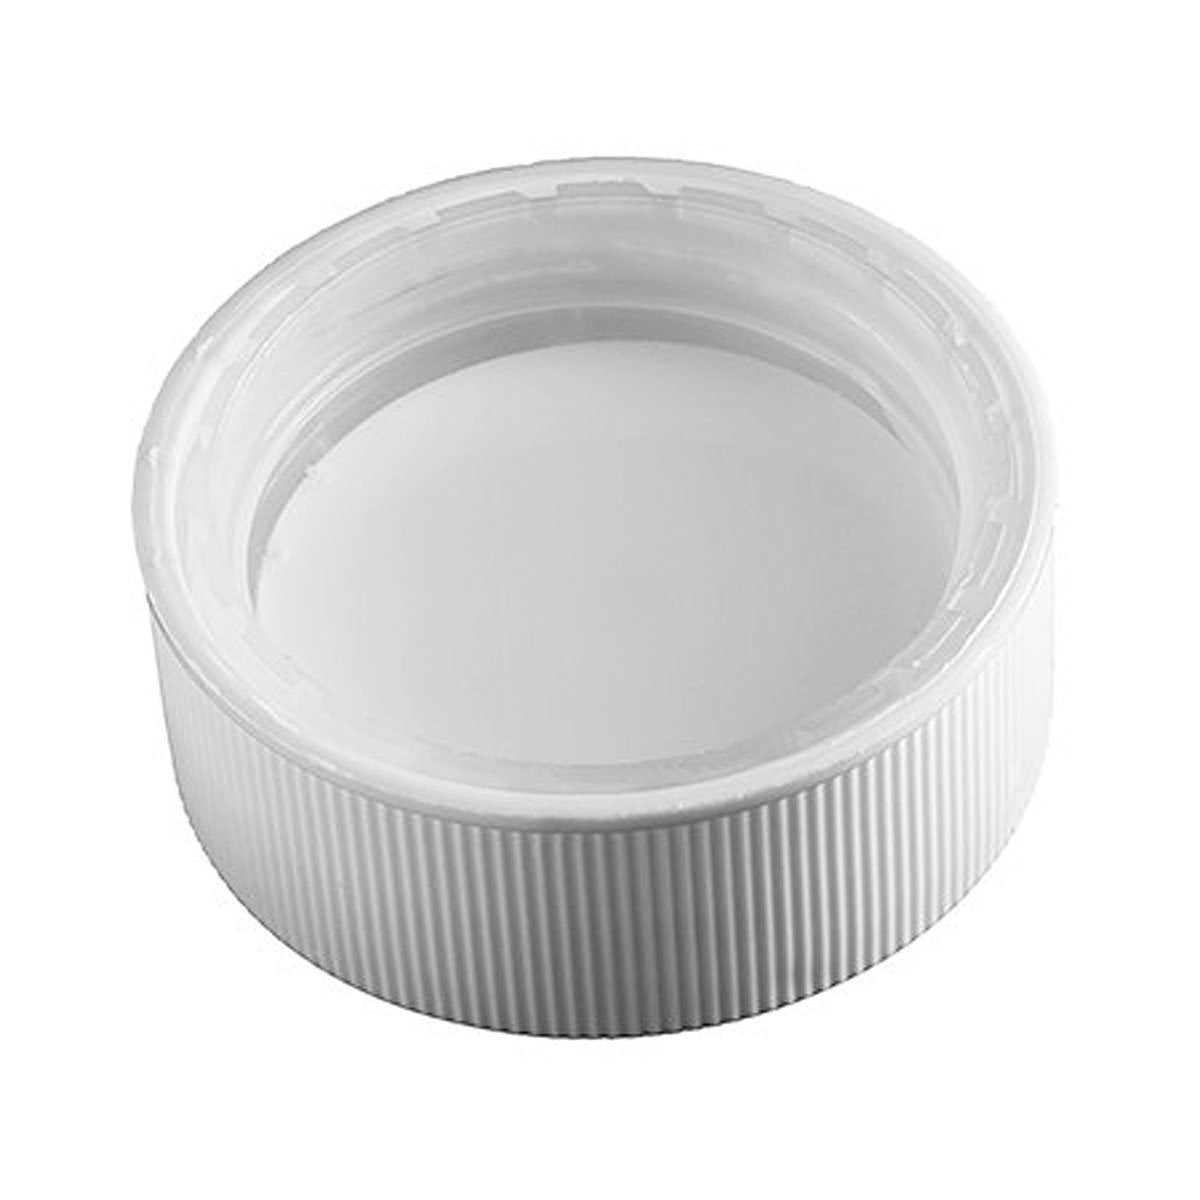 Child-Resistant Ribbed 38-400 Lid with Foam Liner White